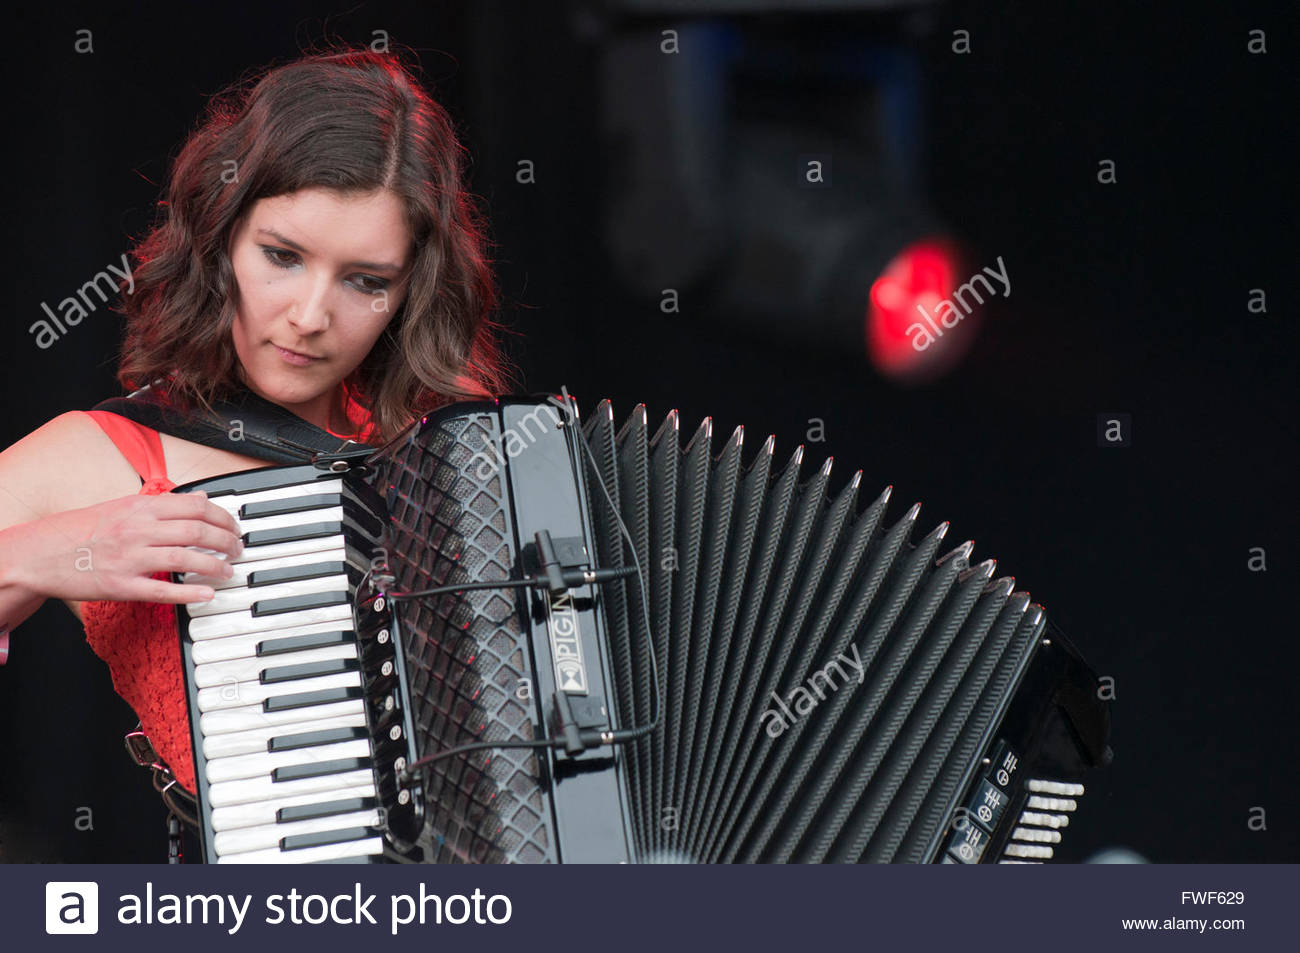 Amy Thatcher of The Shee at Fairport's Cropredy festival, UK, 2011. - Stock Image